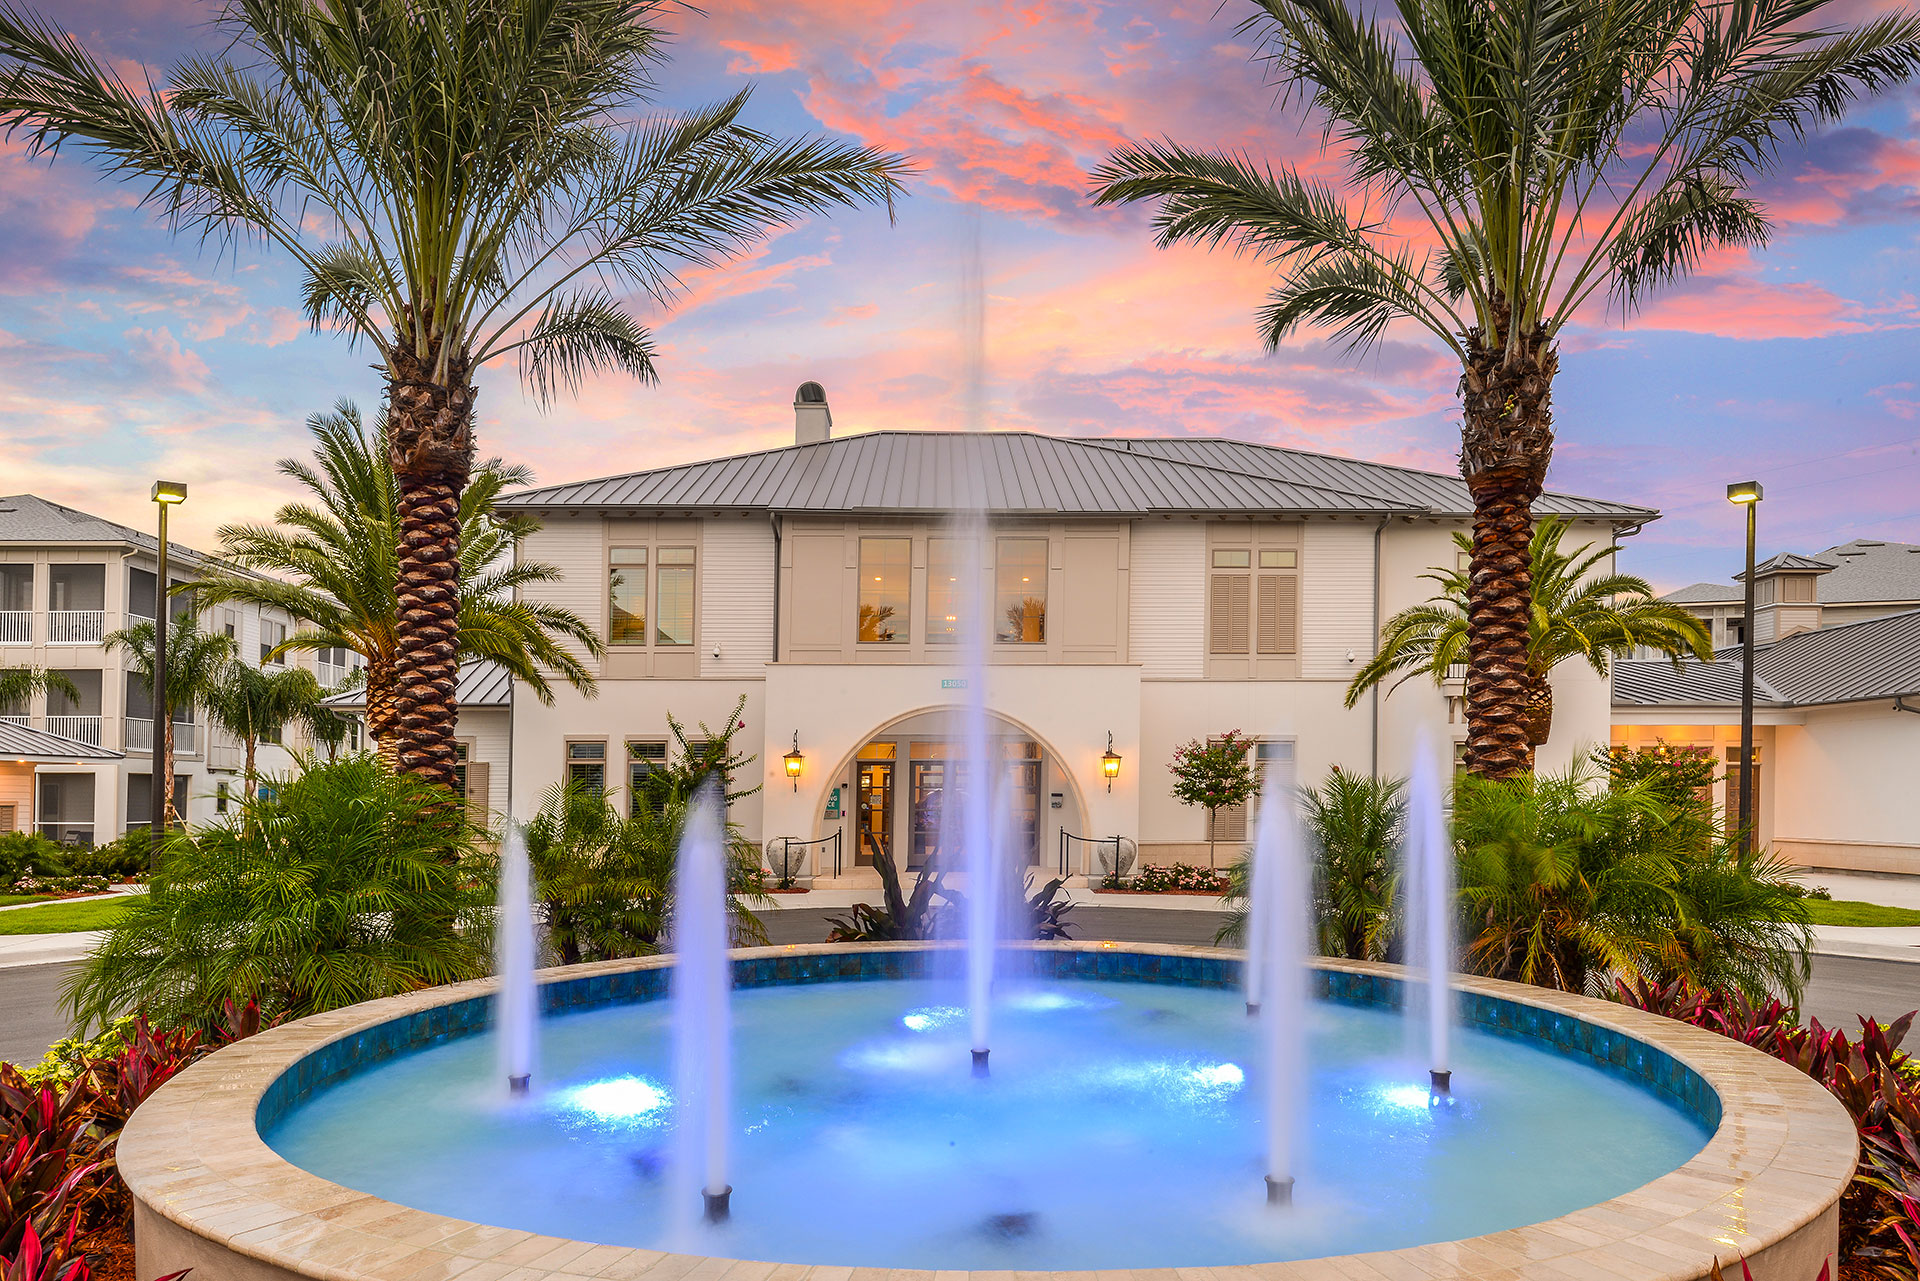 Multi level luxury apartment with fountain and palm trees